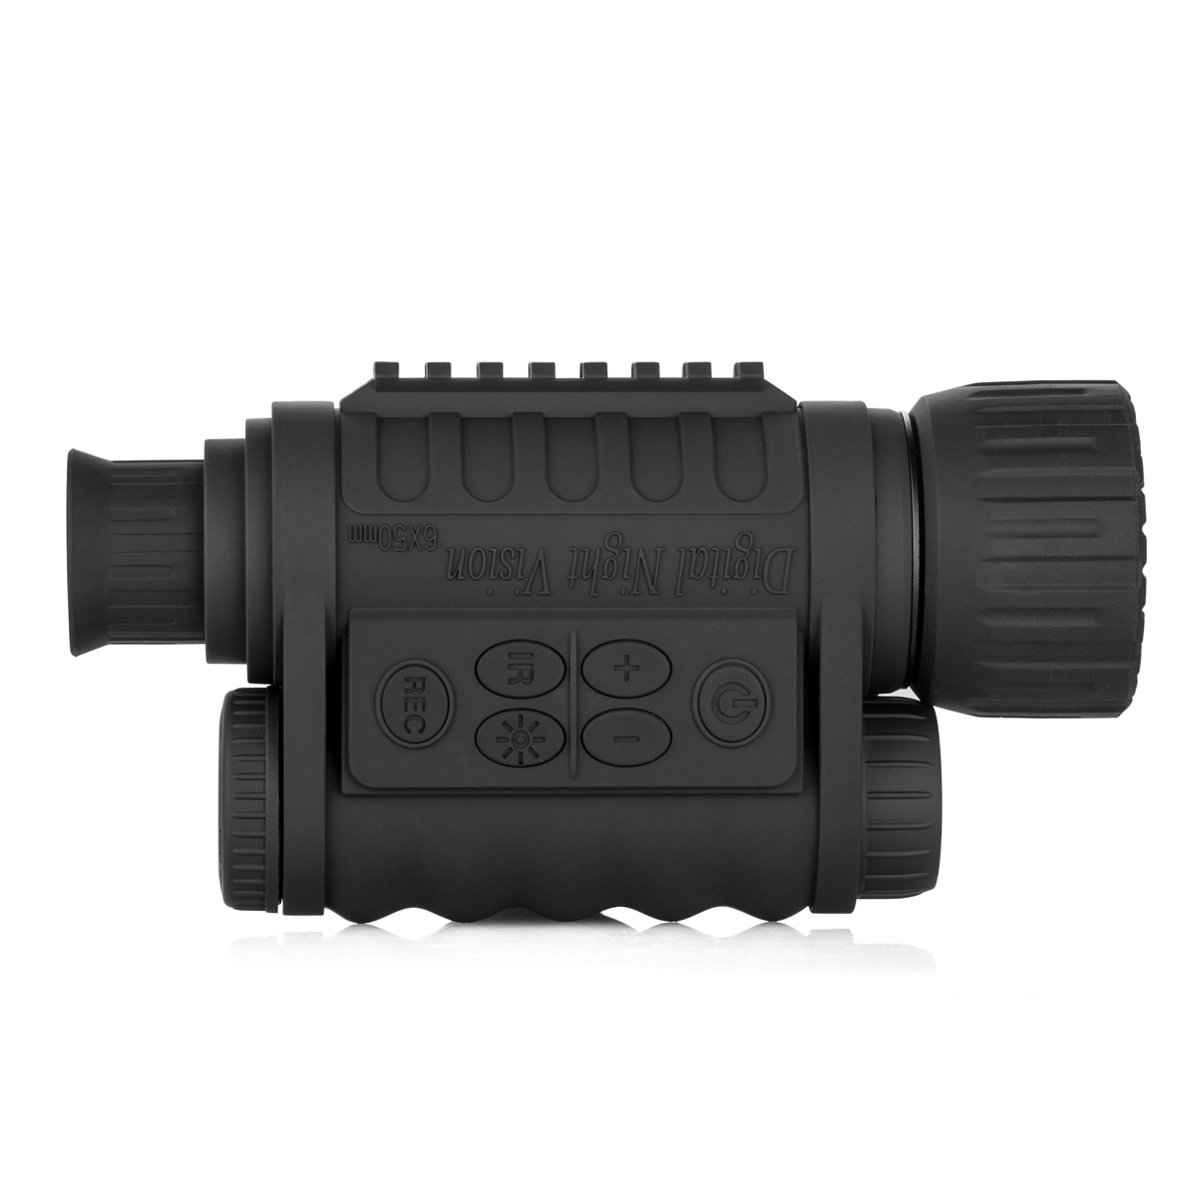 Gemtune WG-50 6x50mm HD Digital Night Vision Monocular with 1.5 inch TFT LCD Camera and Camcorder Function Takes 5mp Photo 720p Video from 350m Distance for night watching or observation by GemTune (Image #3)